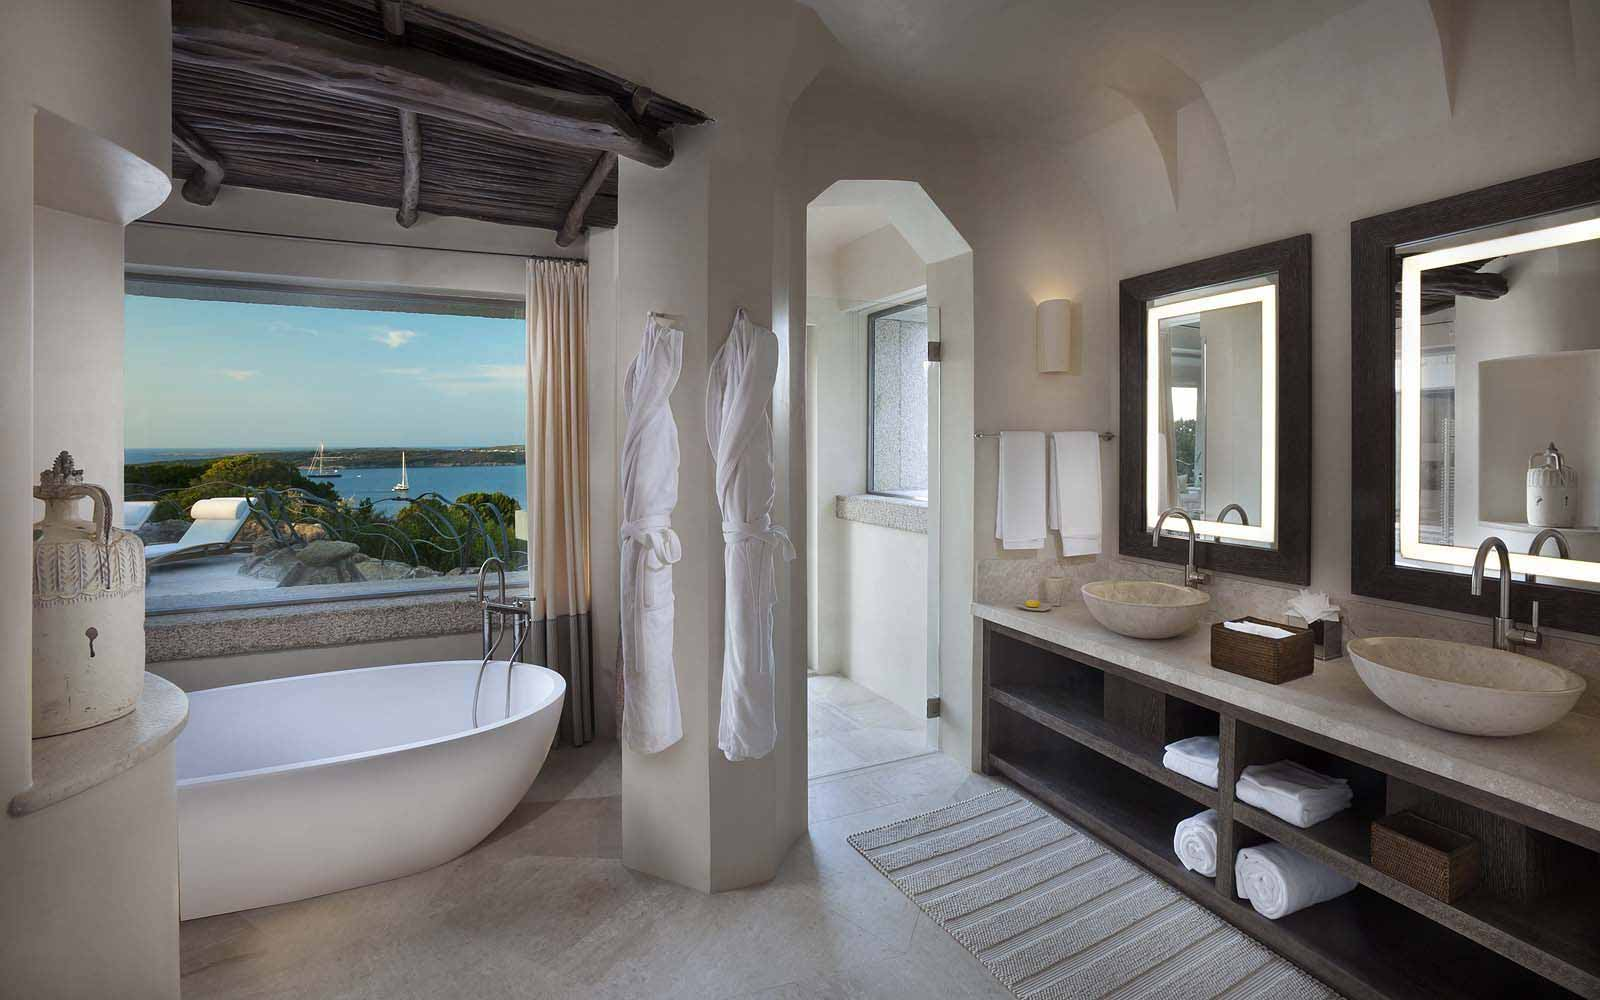 The bathroom of Unique Suite Baki at the Hotel Pitrizza